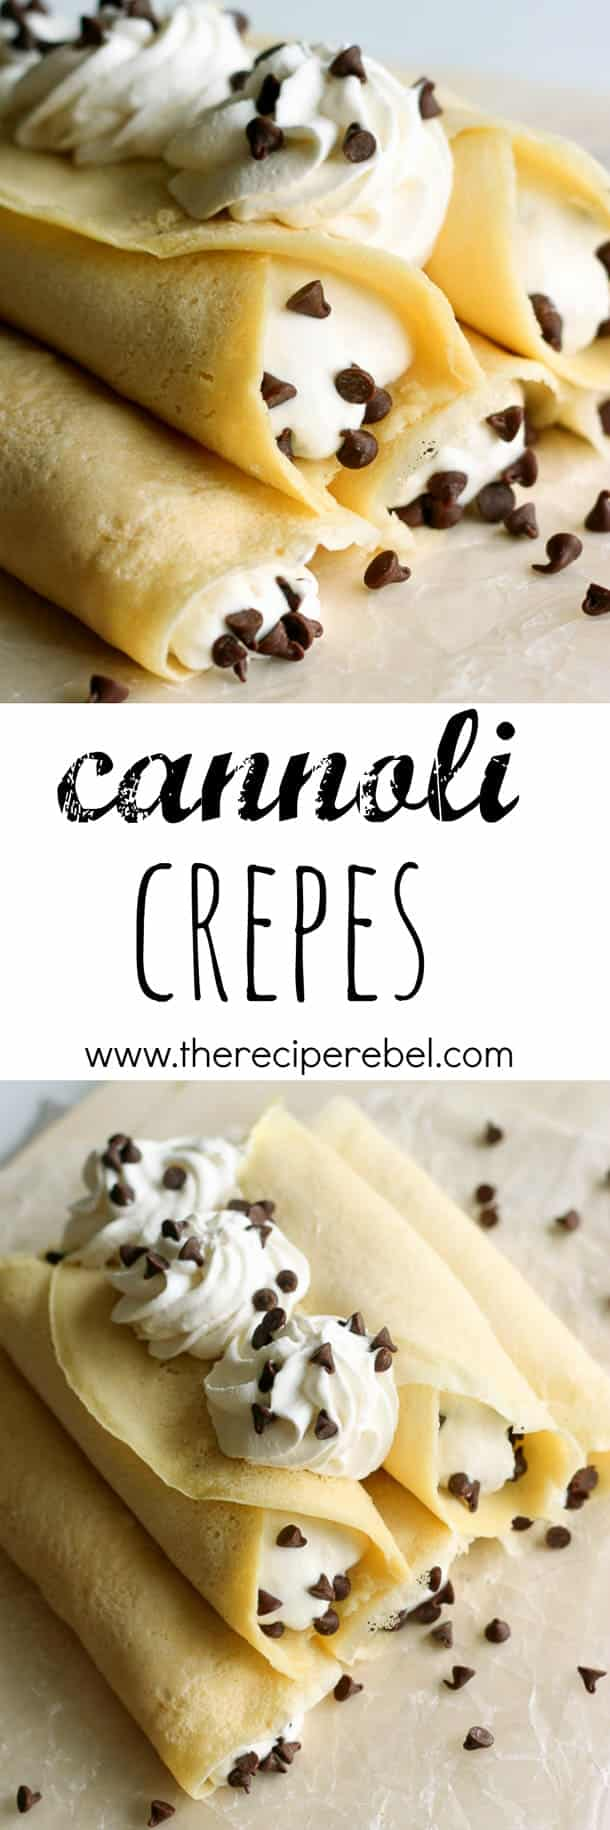 Cannoli Crepes: Soft homemade crepes filled with sweet ricotta cream and chocolate chips, topped with whipped cream and more chocolate chips. A breakfast version of an Italian favorite! www.thereciperebel.com